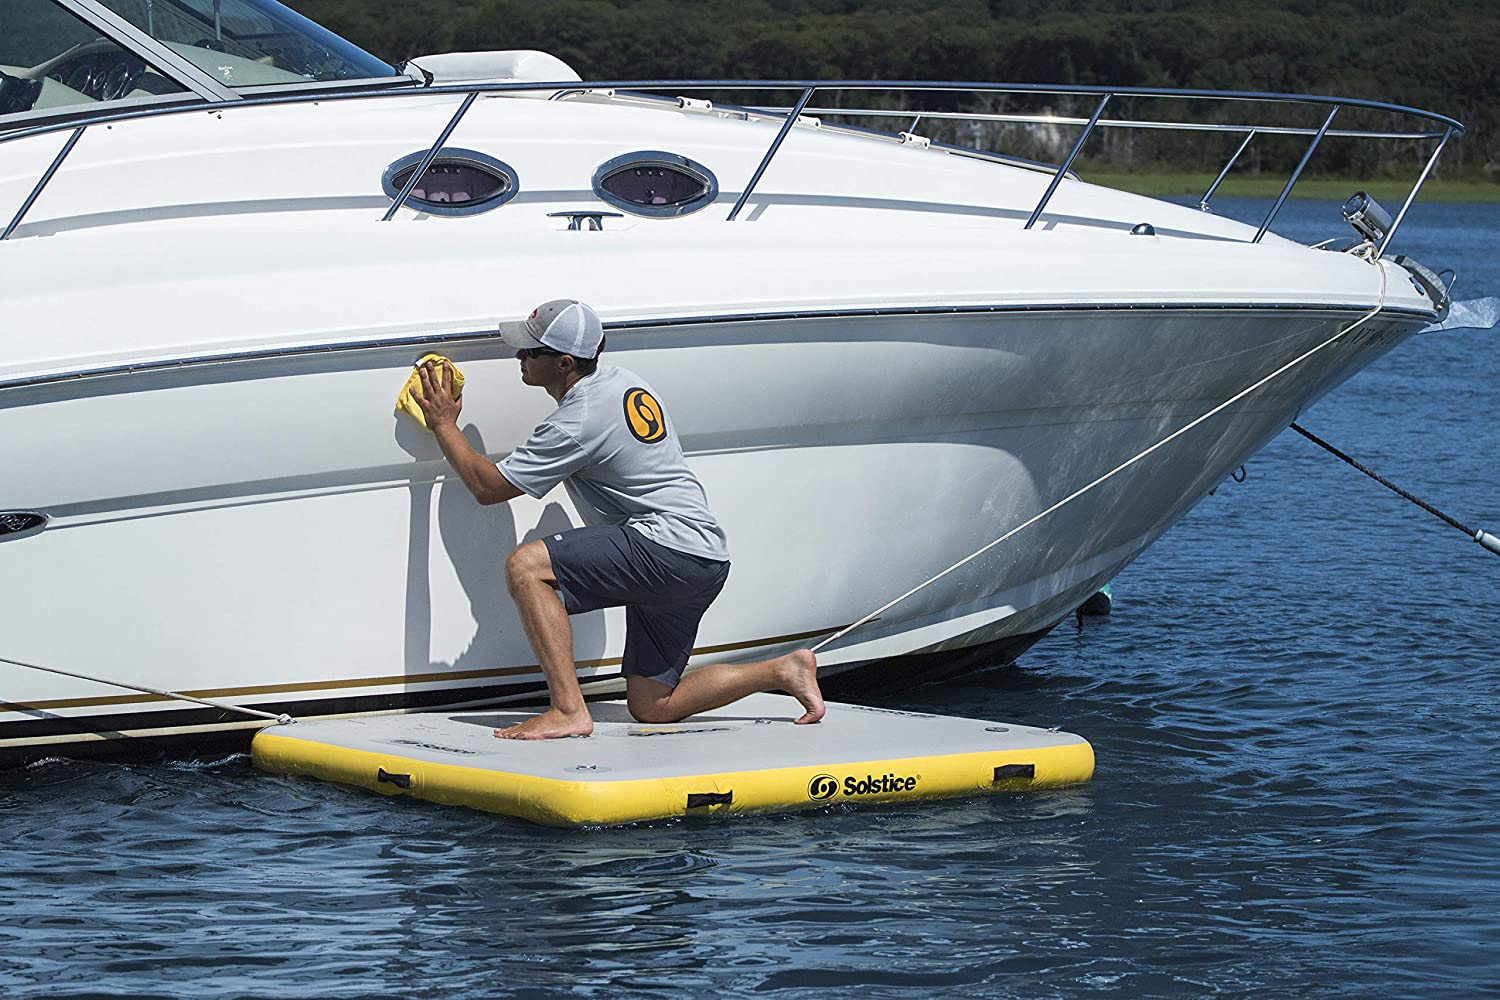 cleaning a boat from an inflatable platform